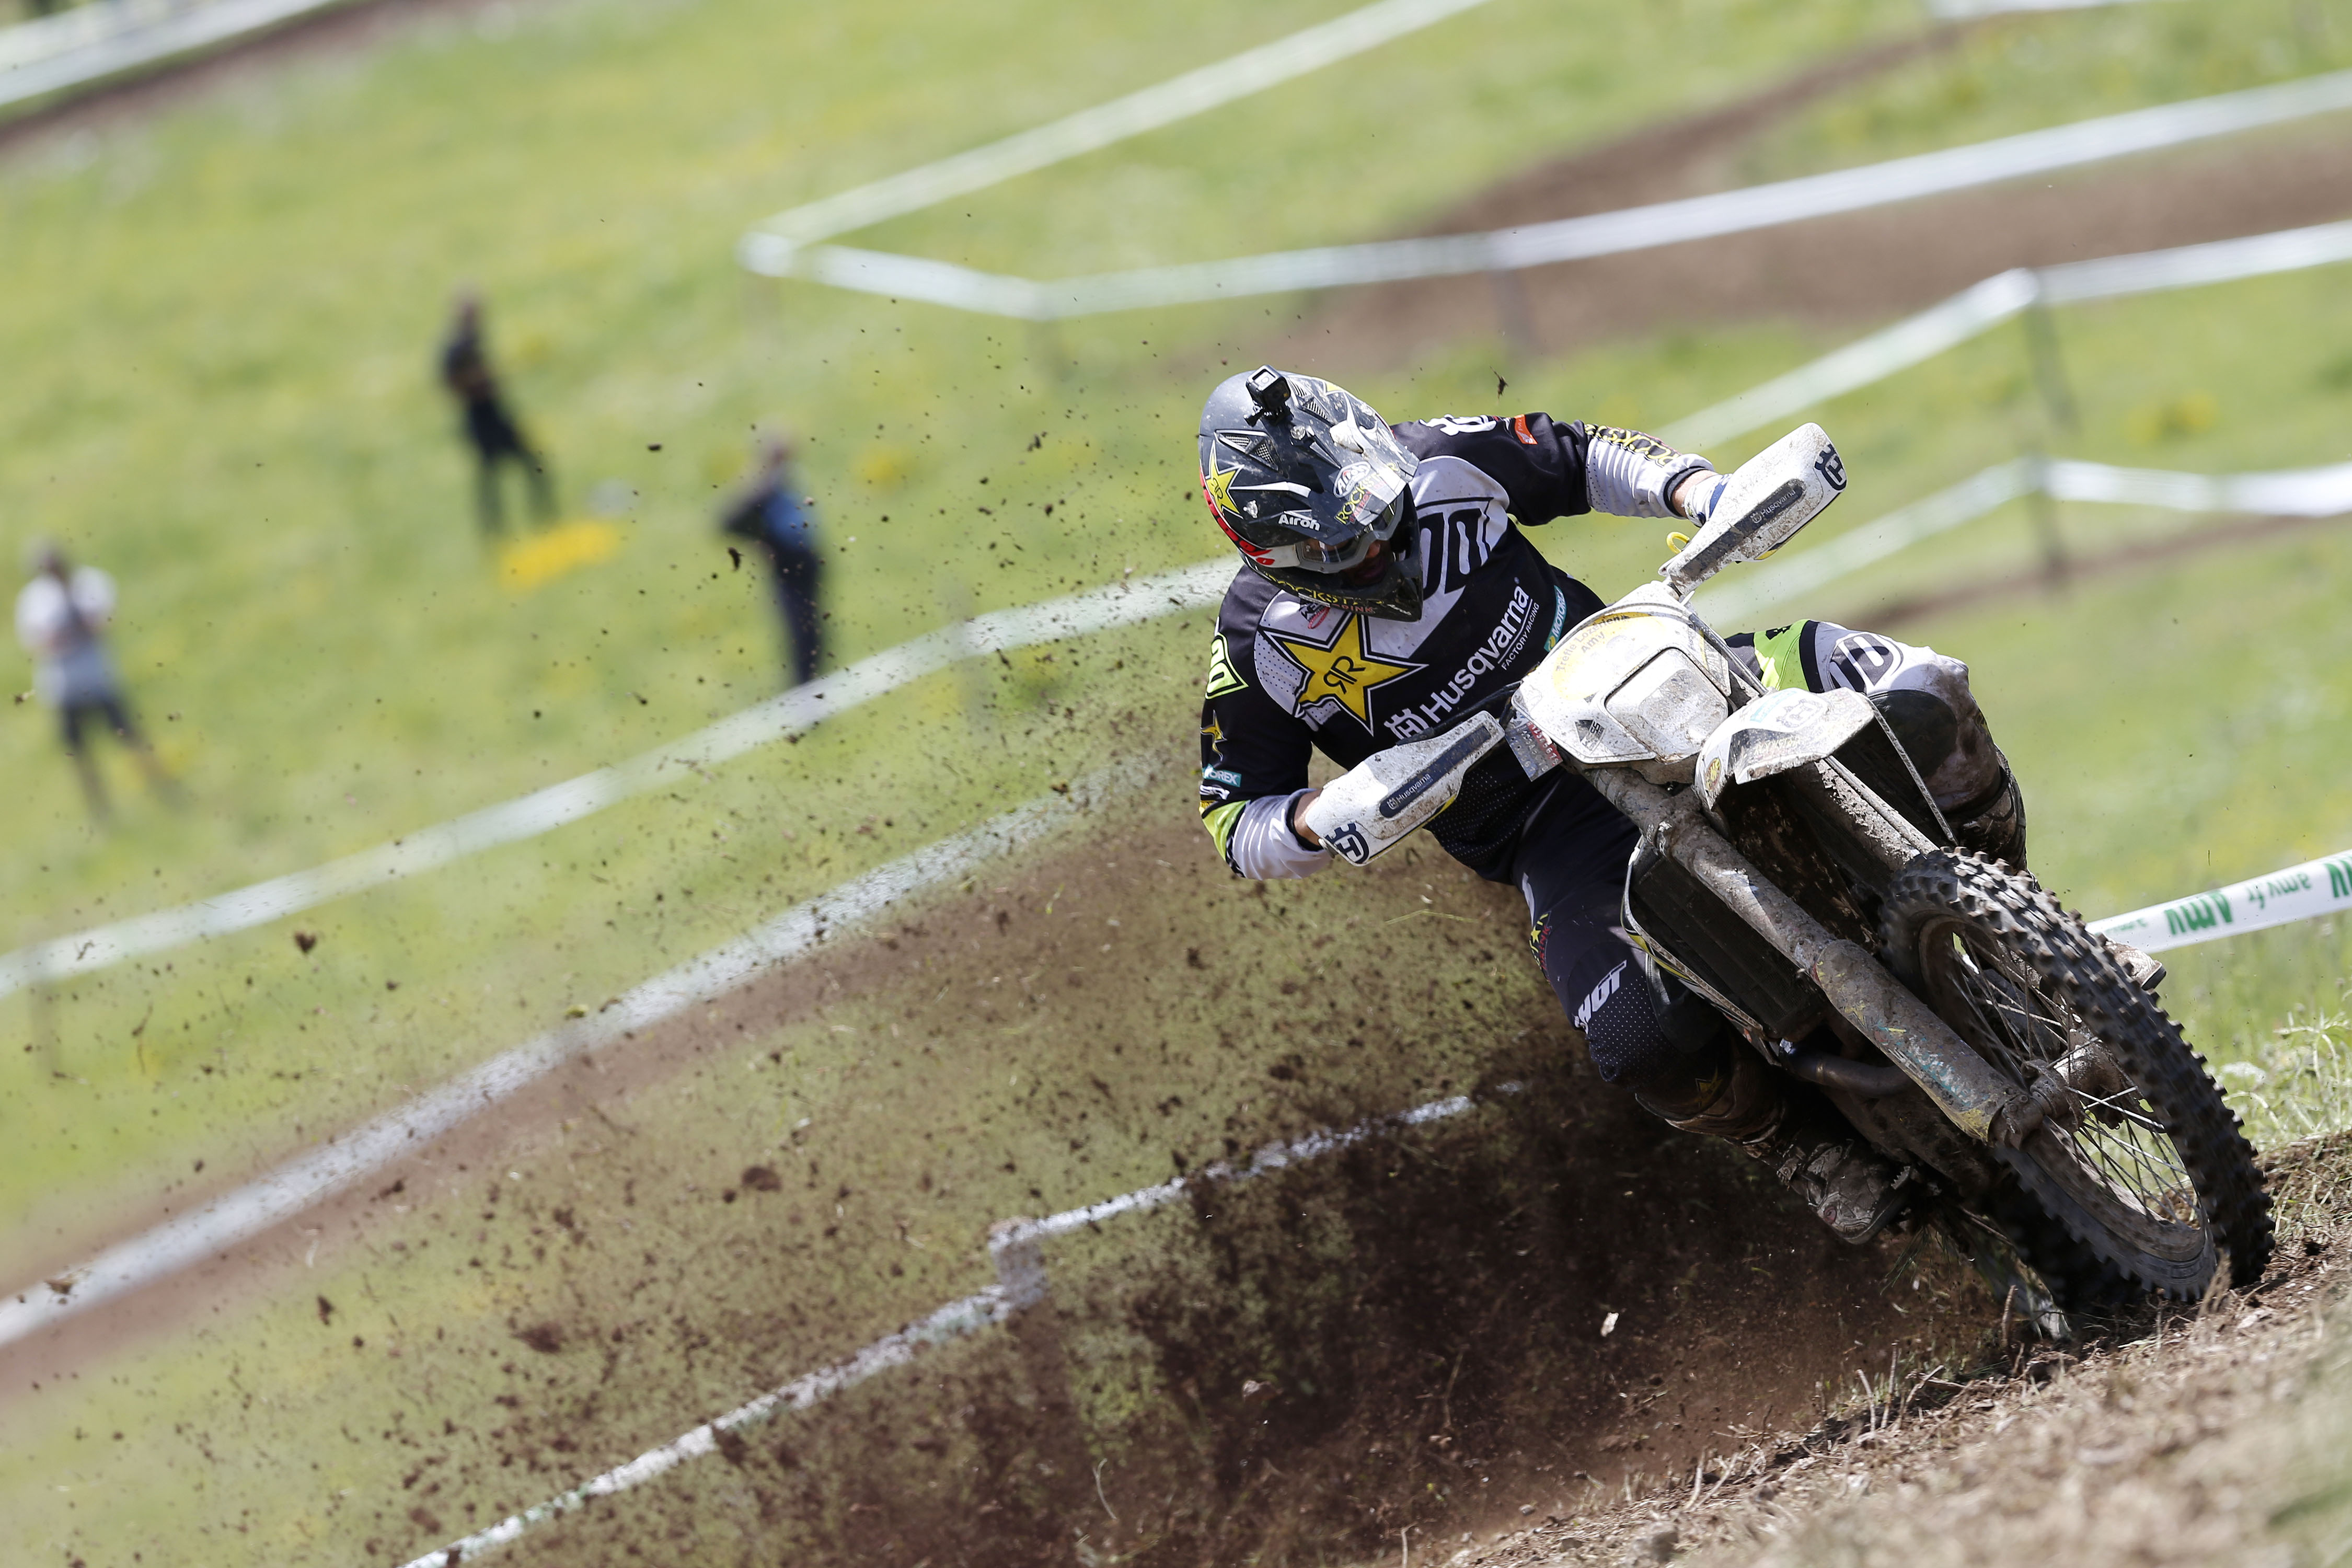 Billy-Bolt-Rockstar-Energy-Husqvarna-Factory-Racing Pilotii Rockstar Energy Husqvarna Factory Racing isi mentin pozitiile in top 5 in campionatul WESS